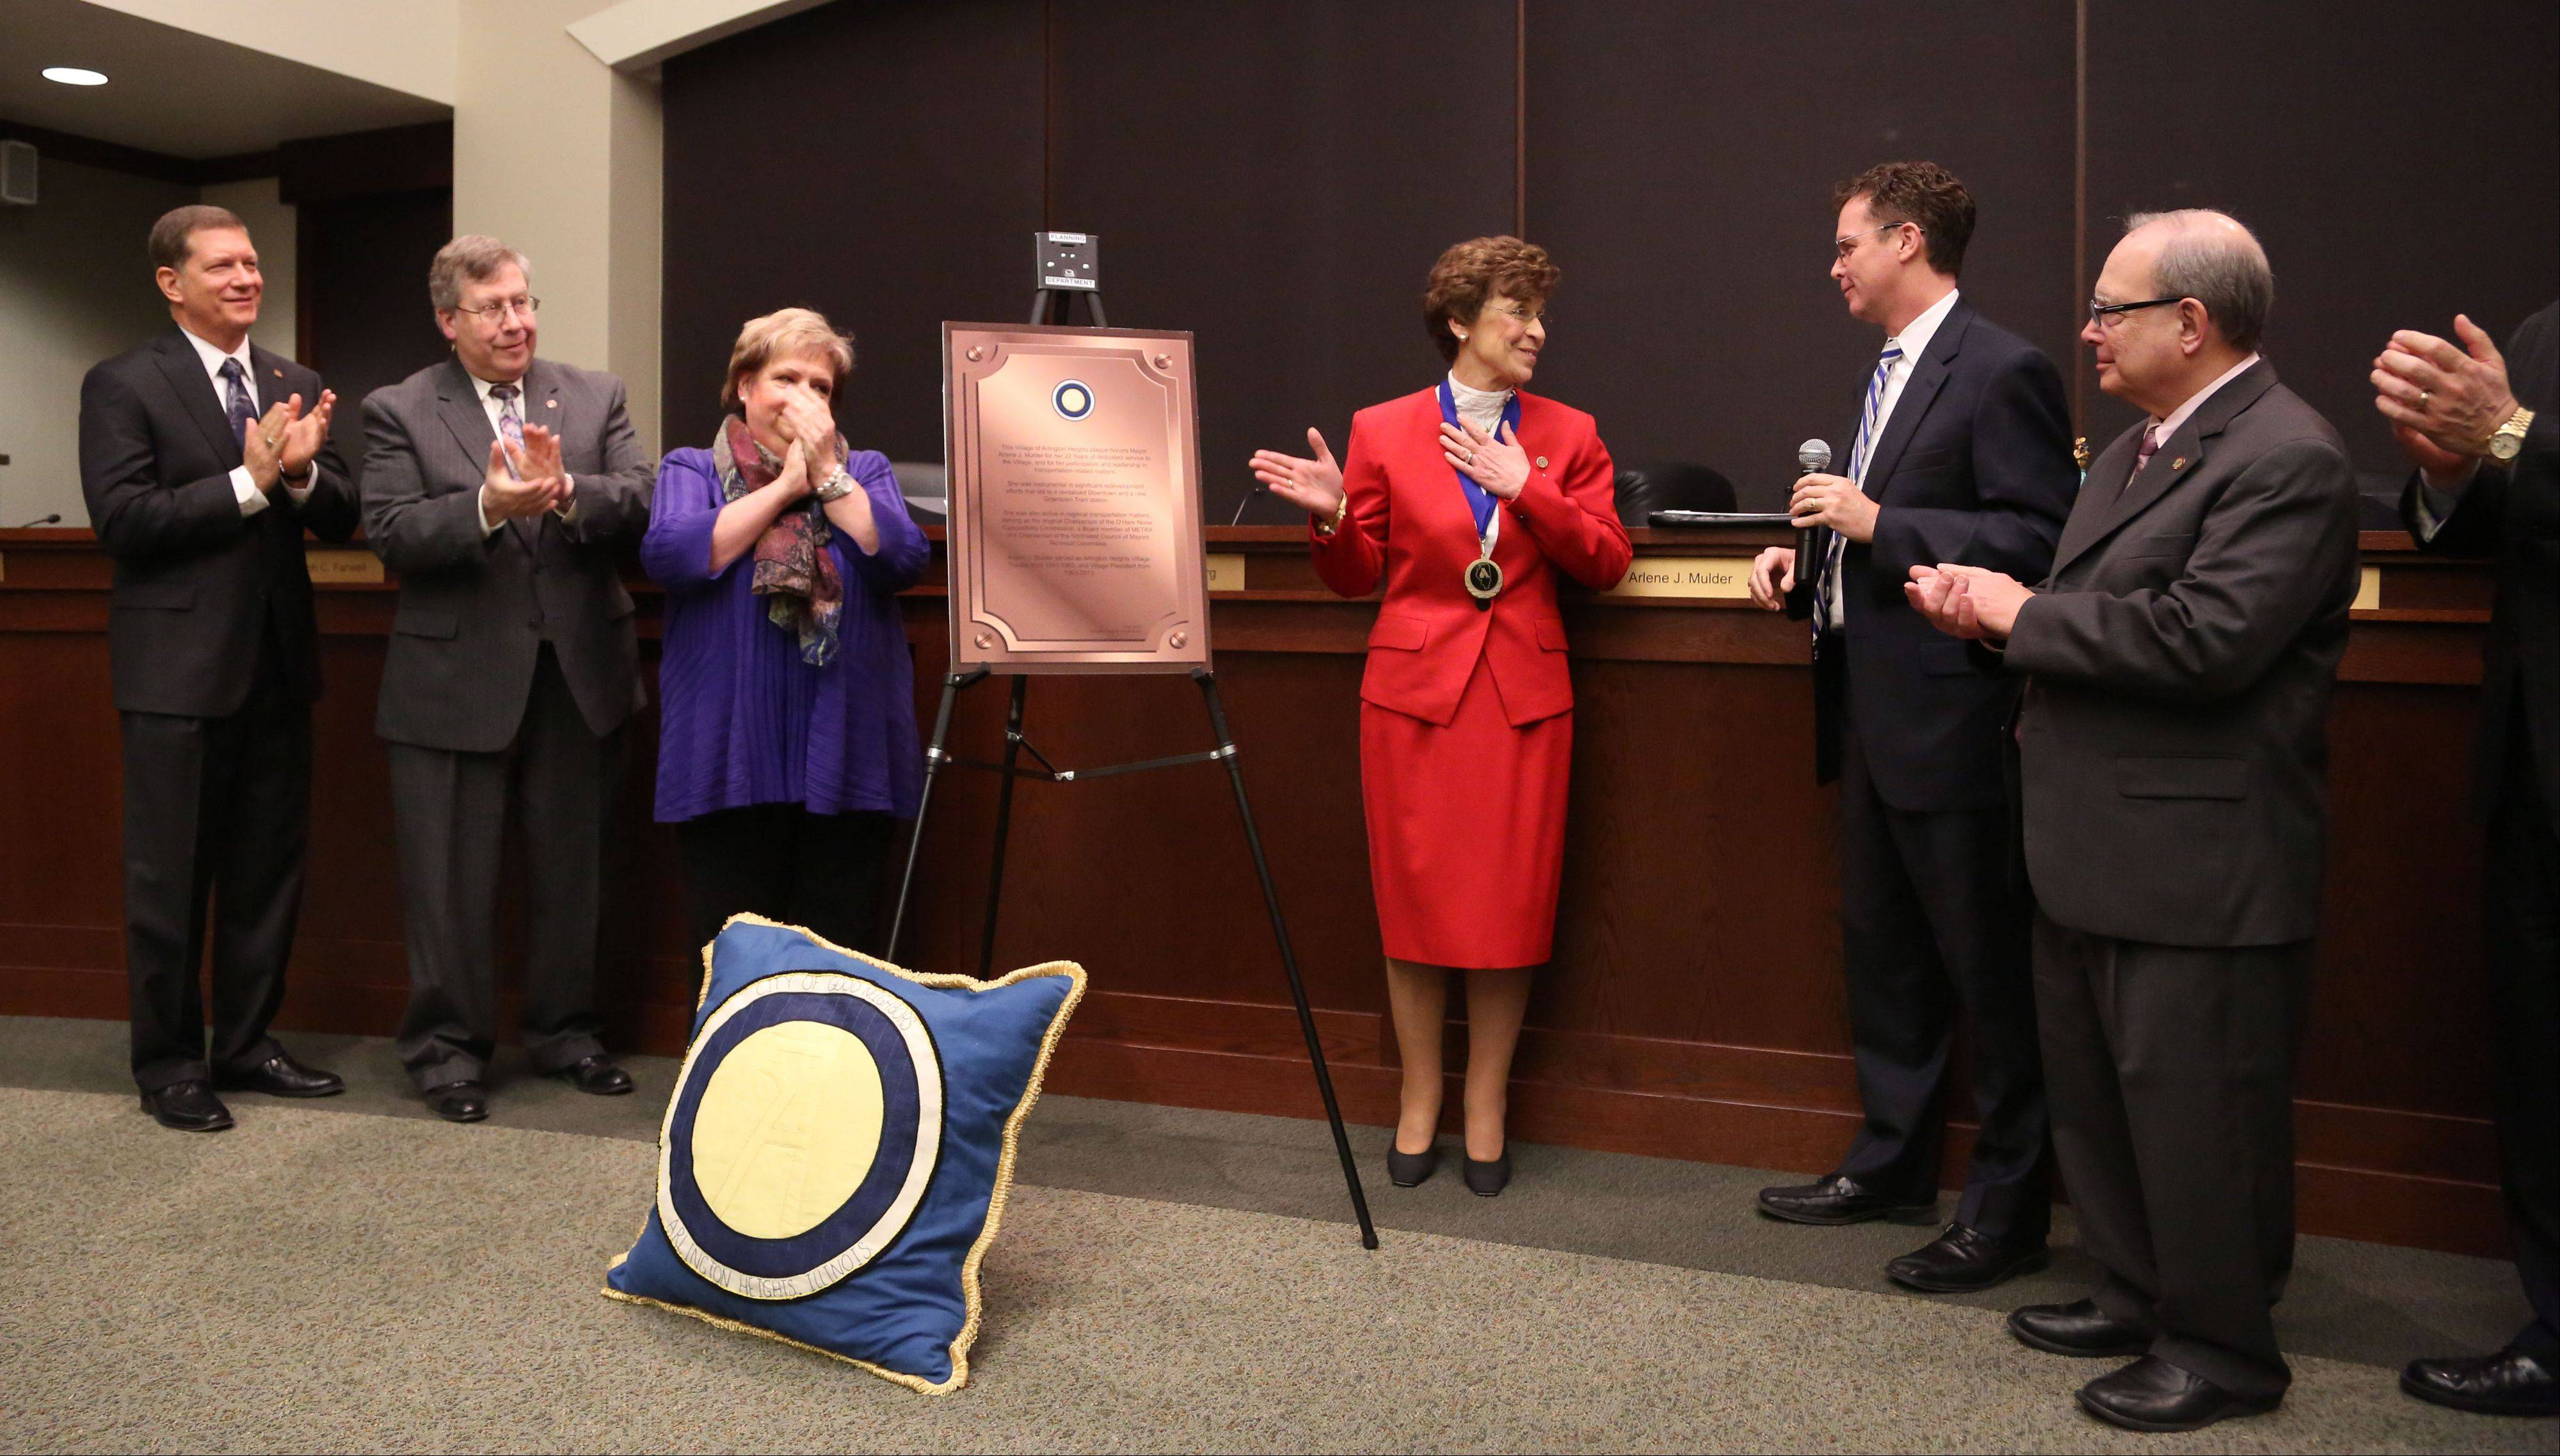 Arlene Mulder is presented with a plaque that will hang in the Metra station in honor of her 20 years of service as mayor of Arlington Heights.